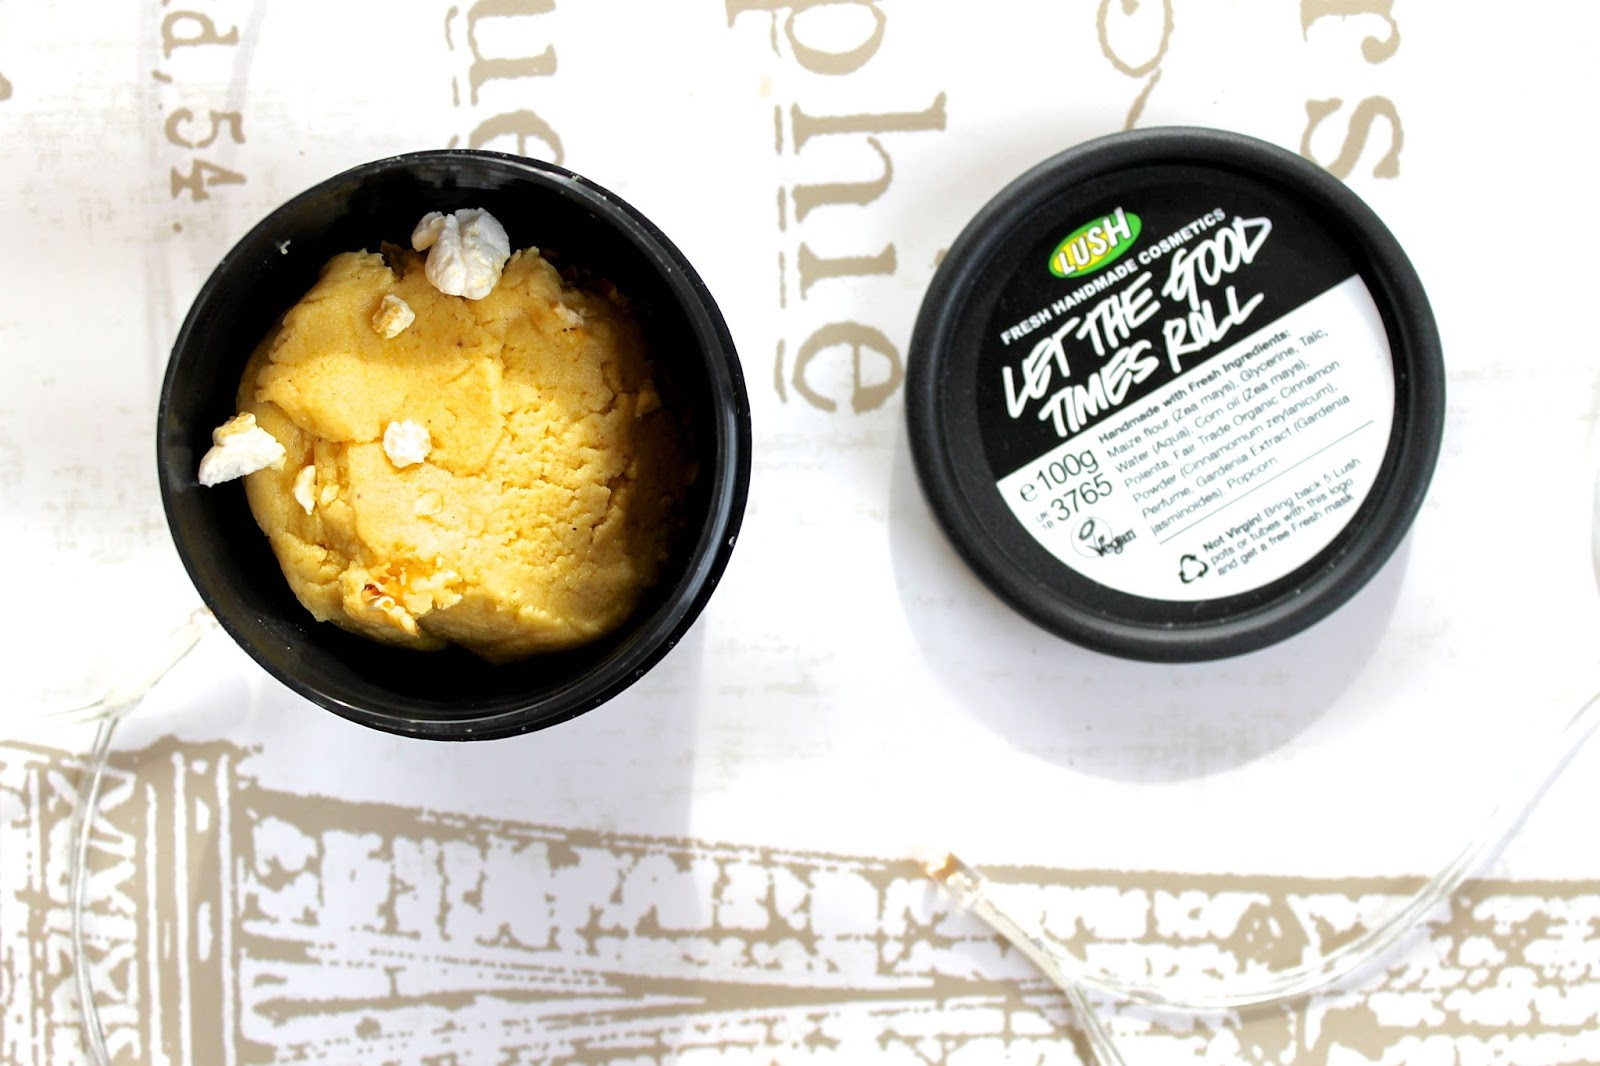 LUSH let the good times roll exfoliator